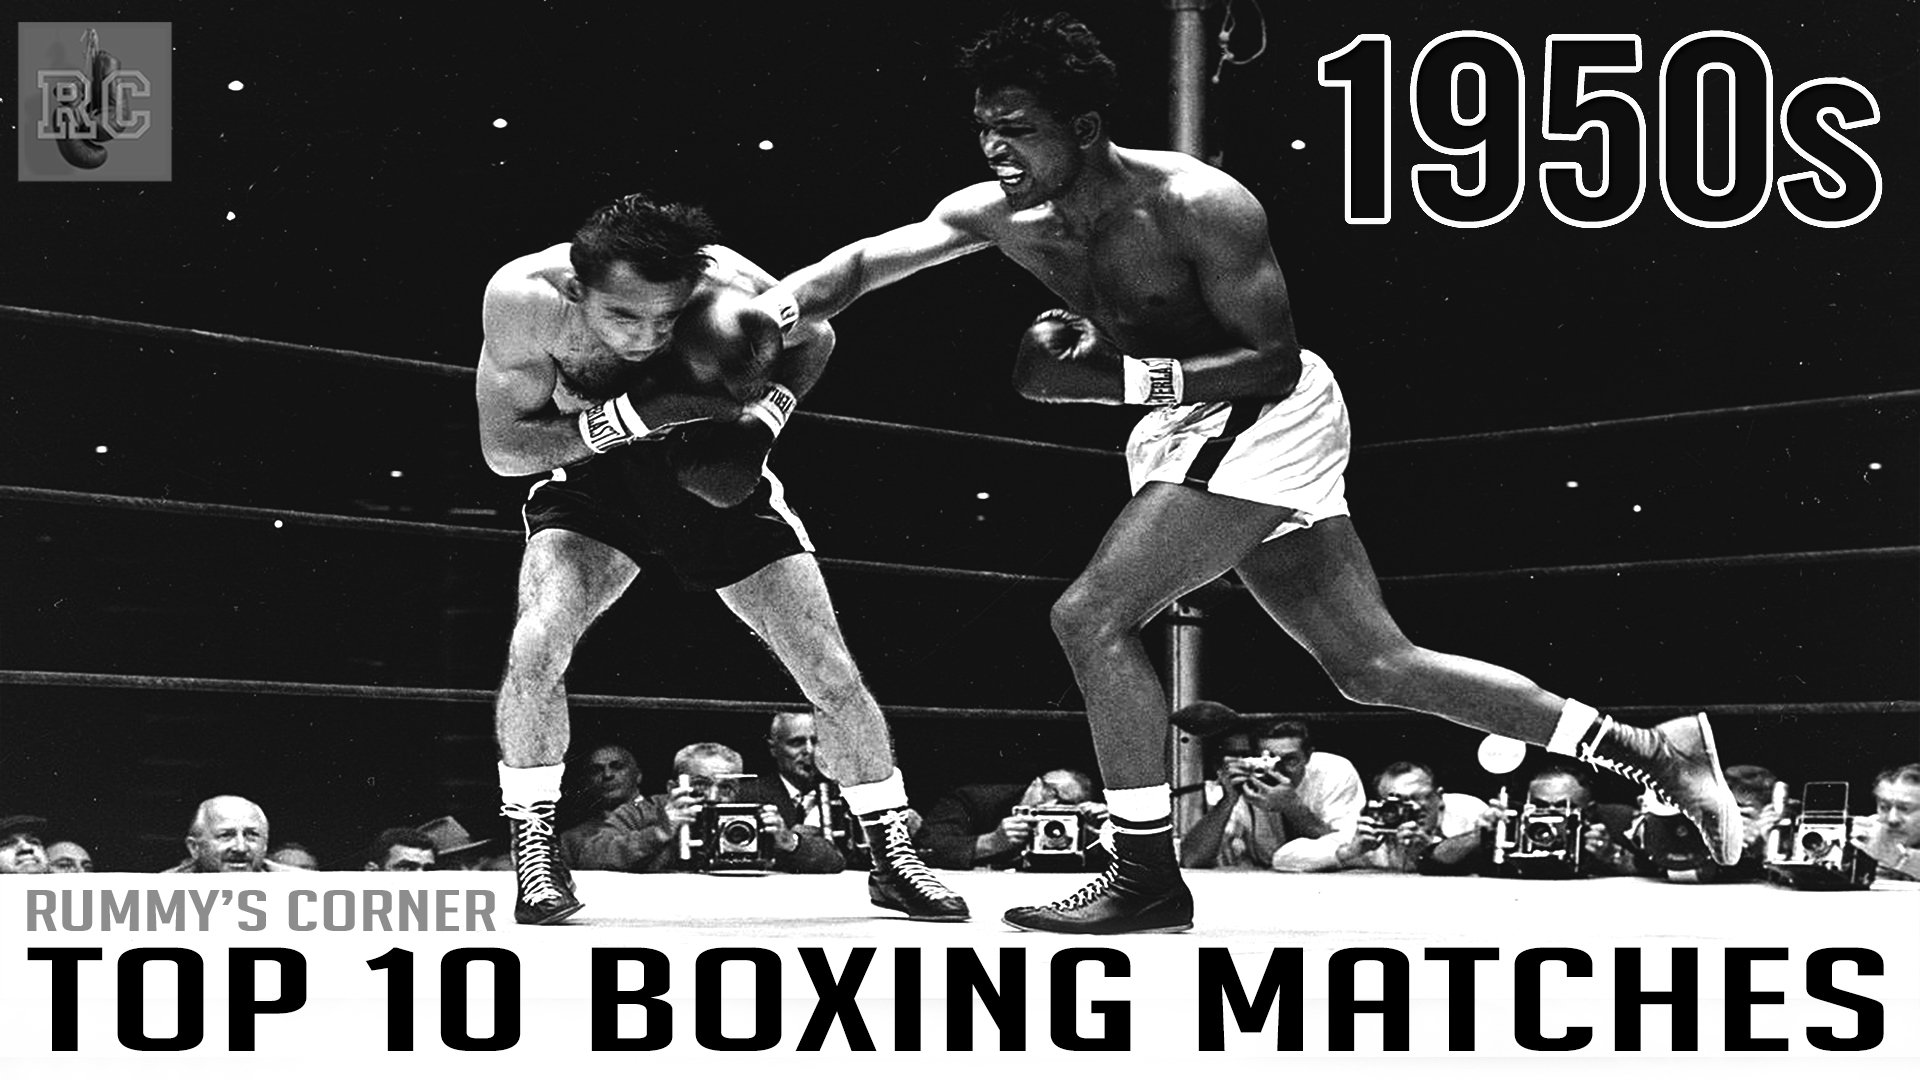 Video: Best Boxing Matches from the 1950s